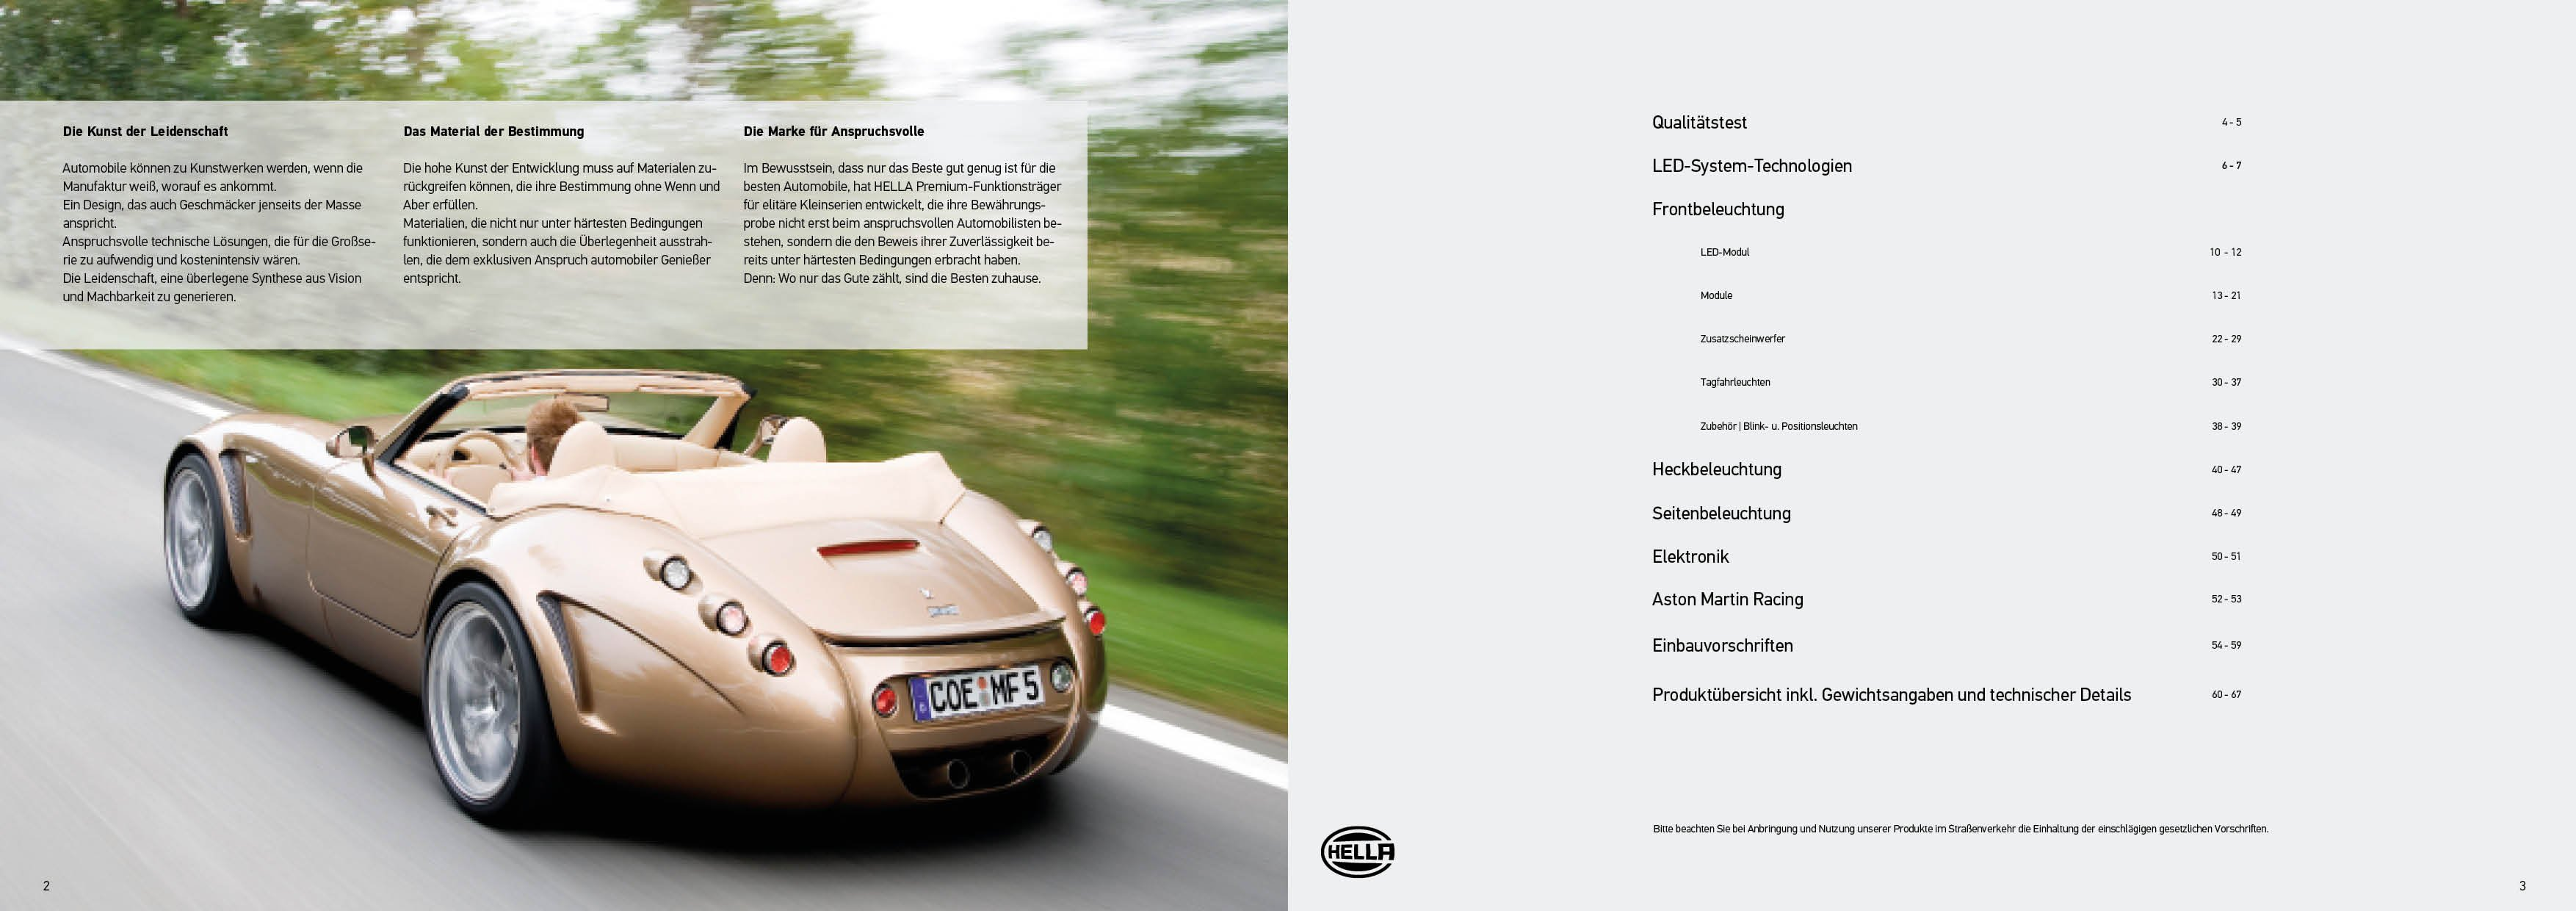 Automotive Agentur